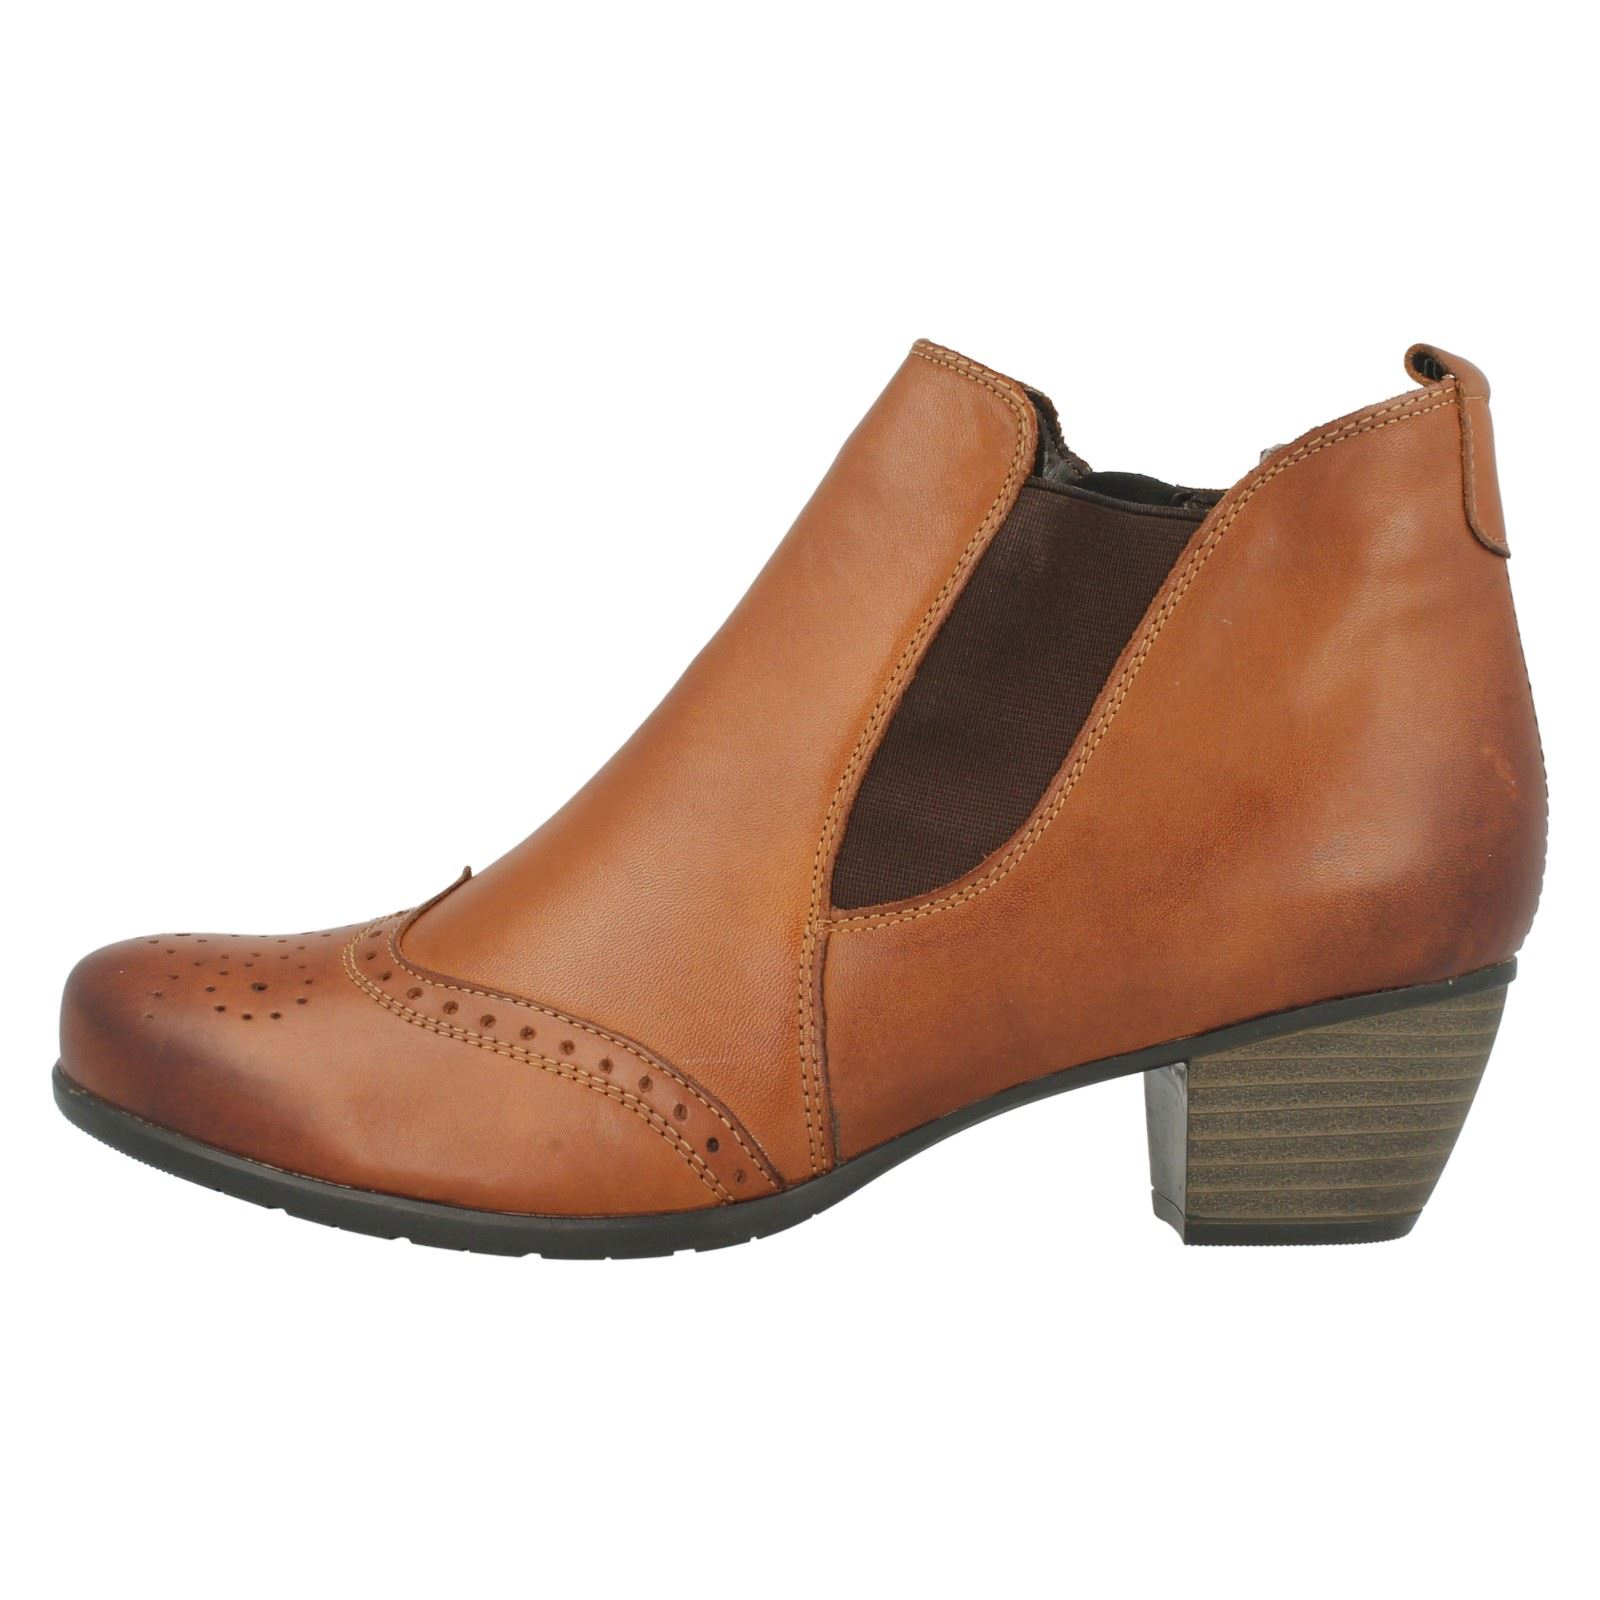 Ankle Ladies Boots Brown 'r9187' Remonte S5qOR5